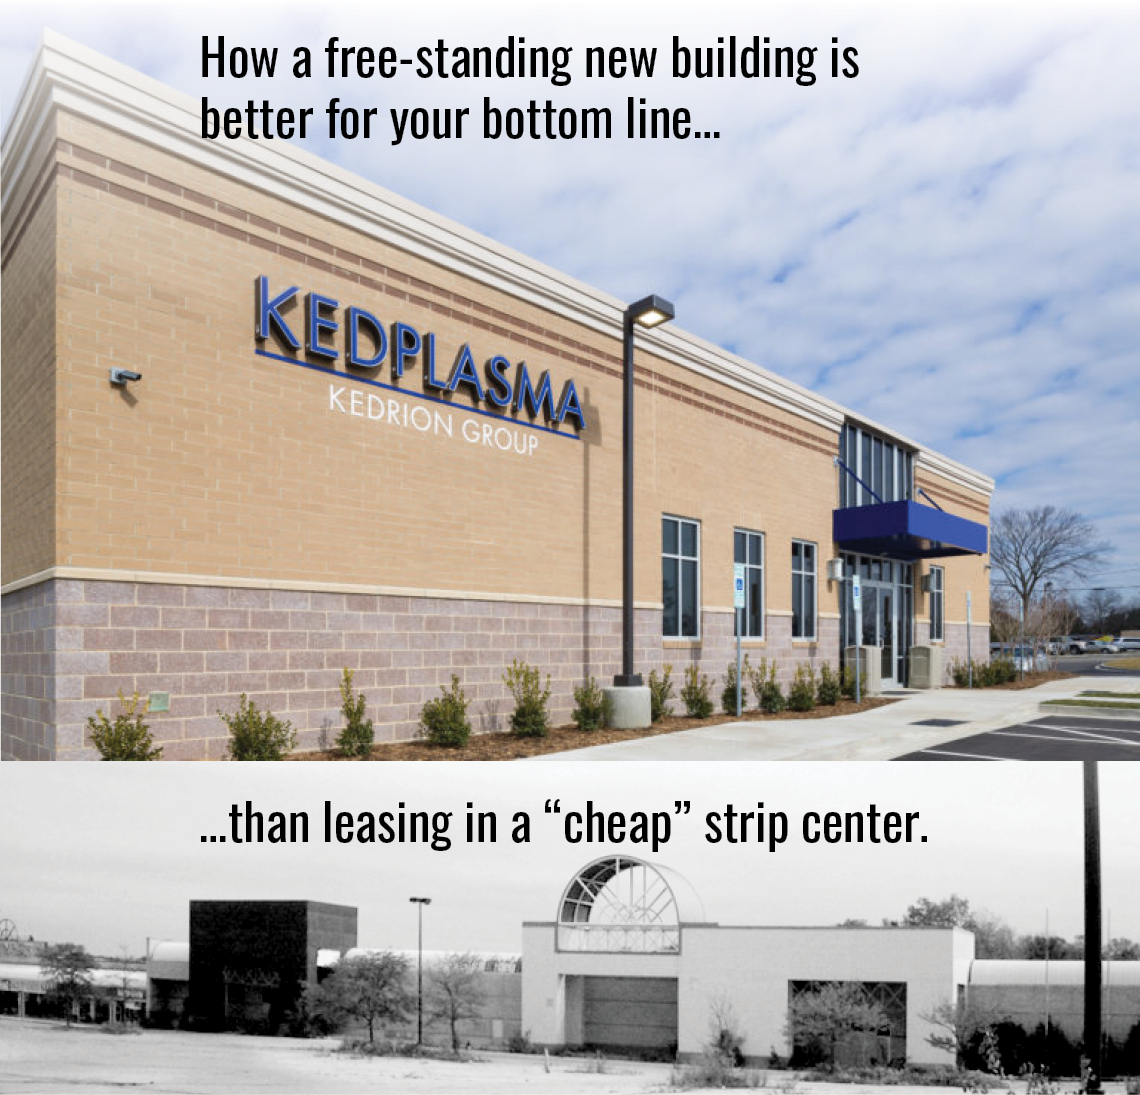 How a free-standing new building is better for your bottom line than leasing in a